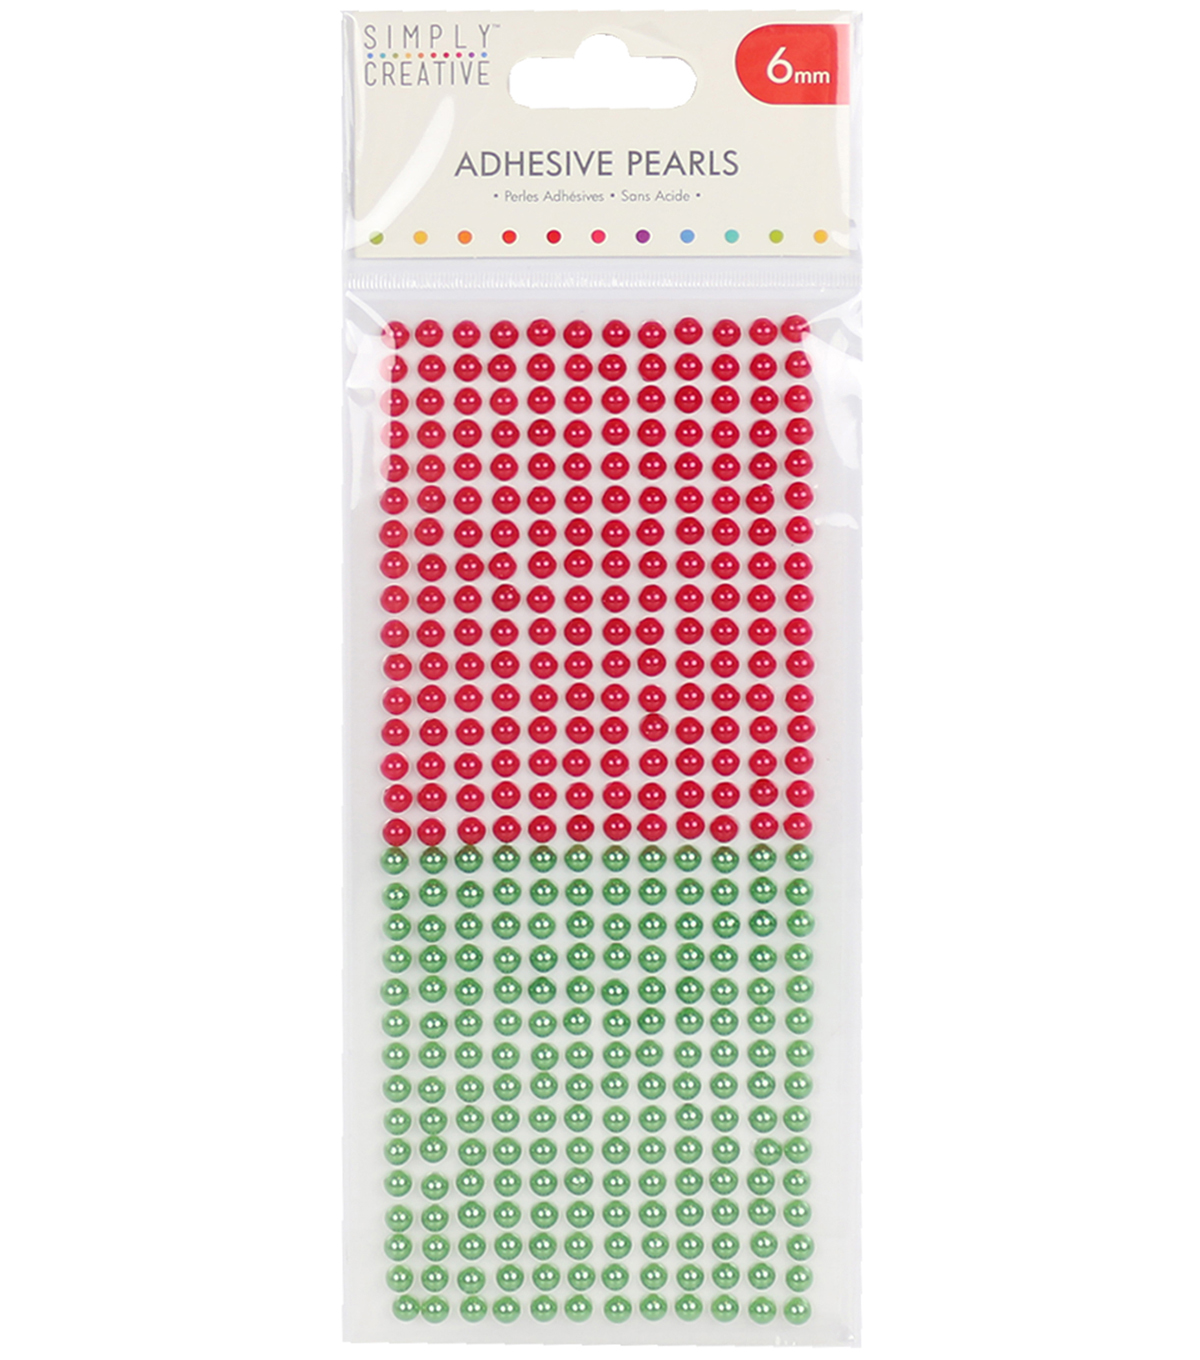 Simply Creative 372 pk 6 mm Adhesive Pearls-Red & Green